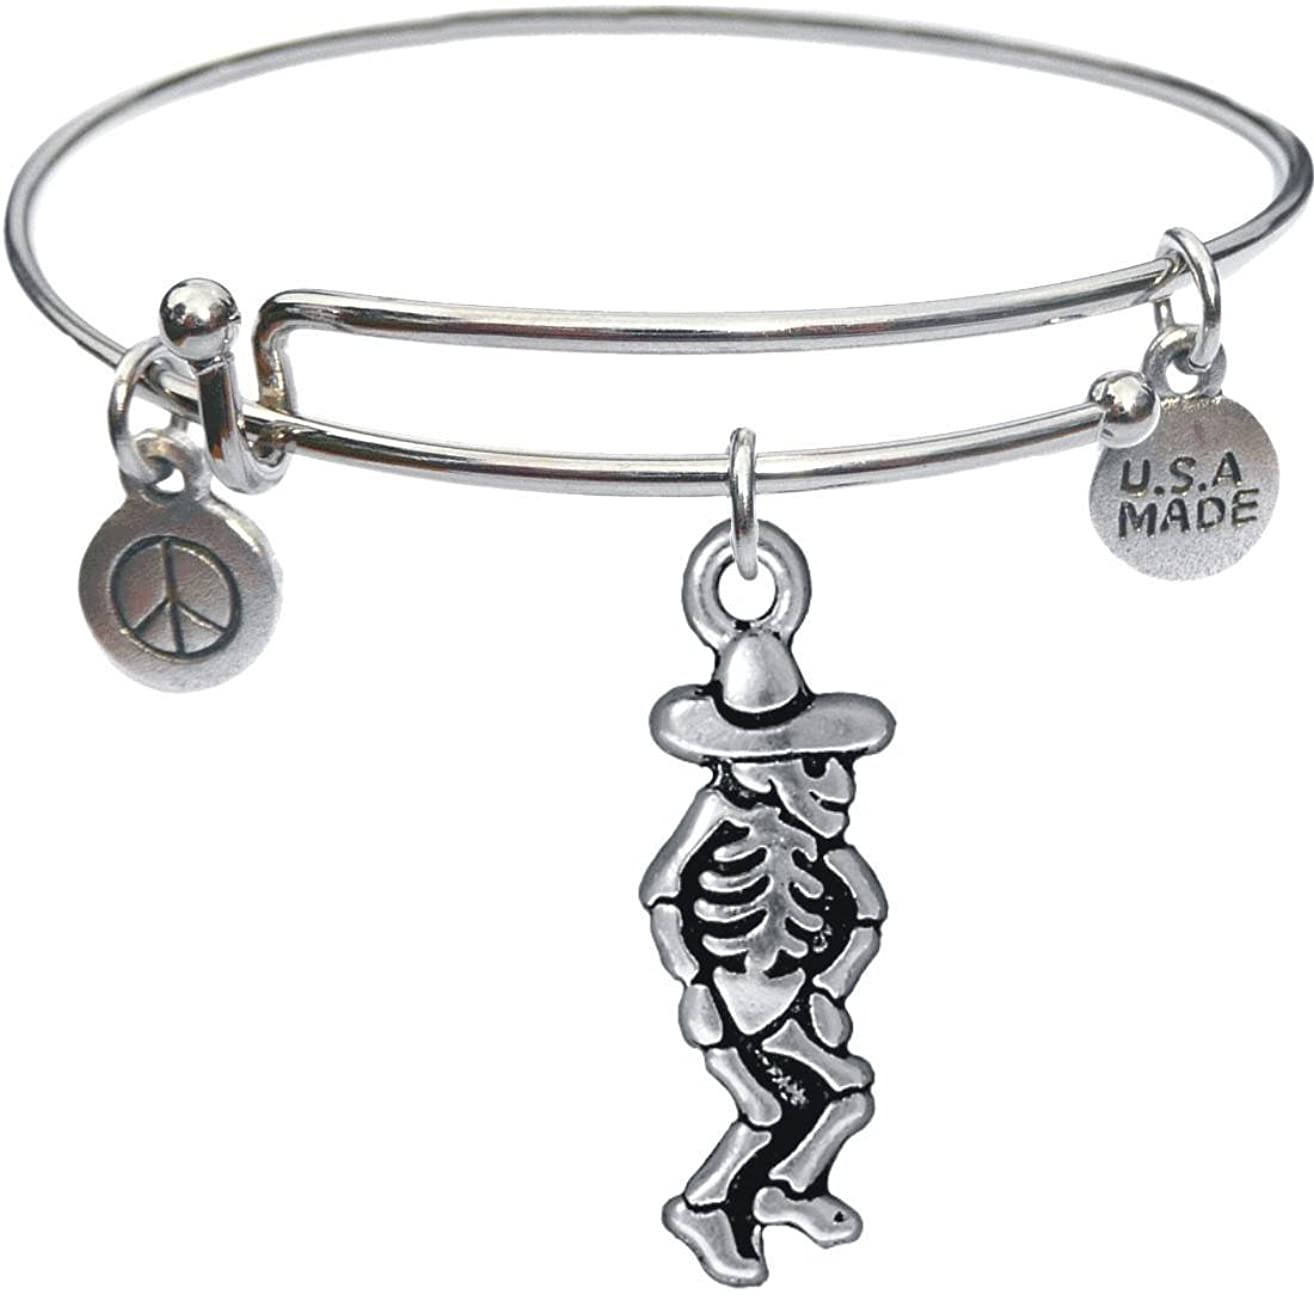 Bangle Bracelet and Dancing Senor Charm